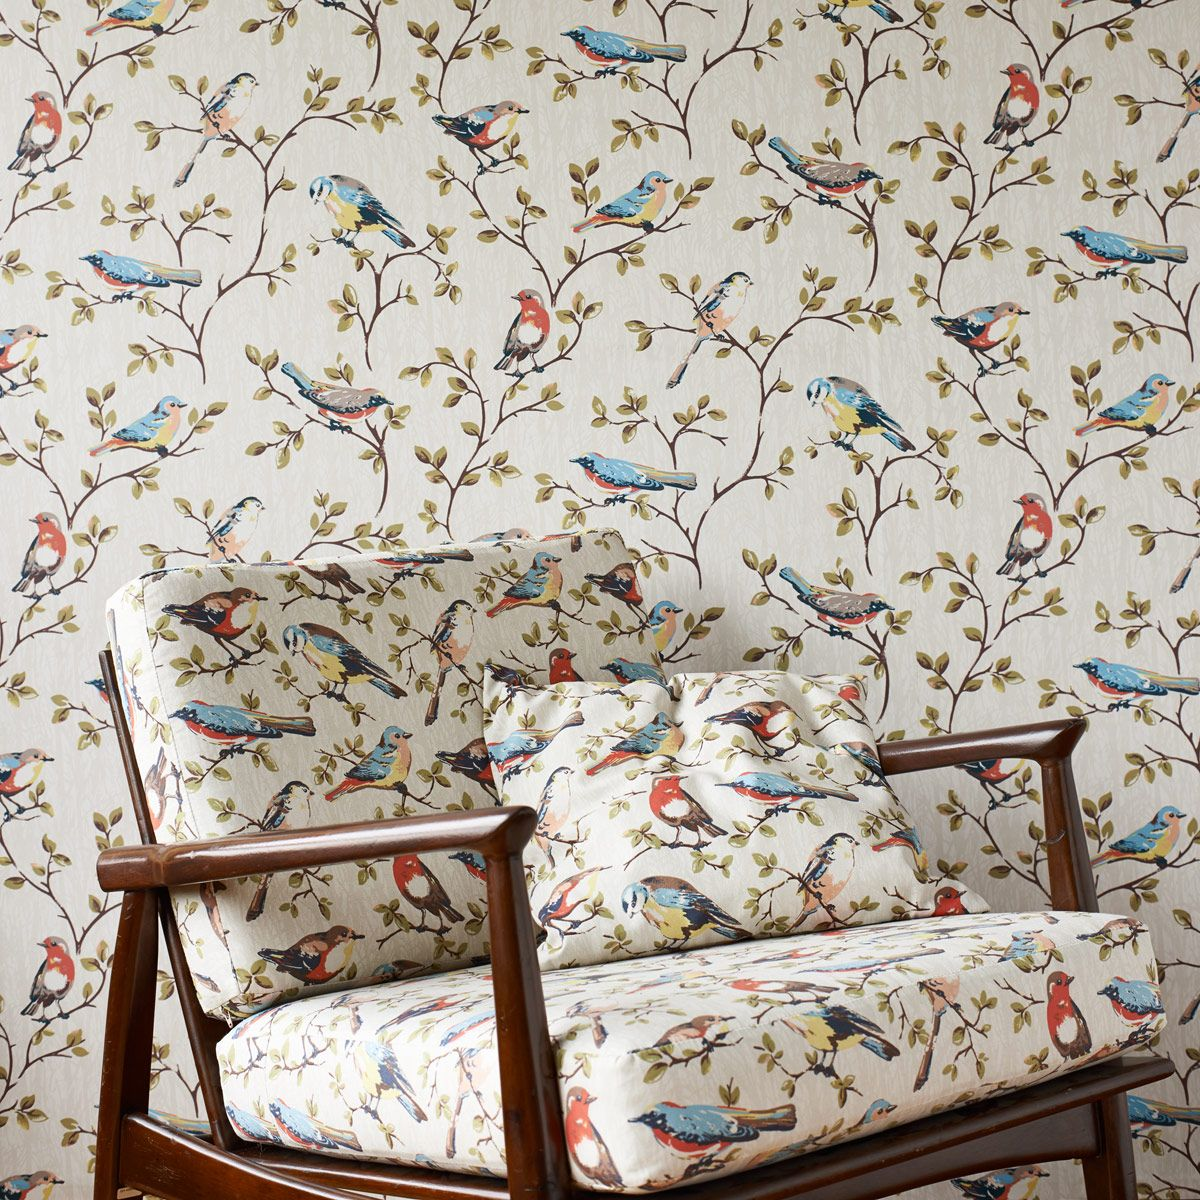 Exceptionnel Garden Birds Wallpaper Home Decor Ton Sur Ton   Gentsome Magazine